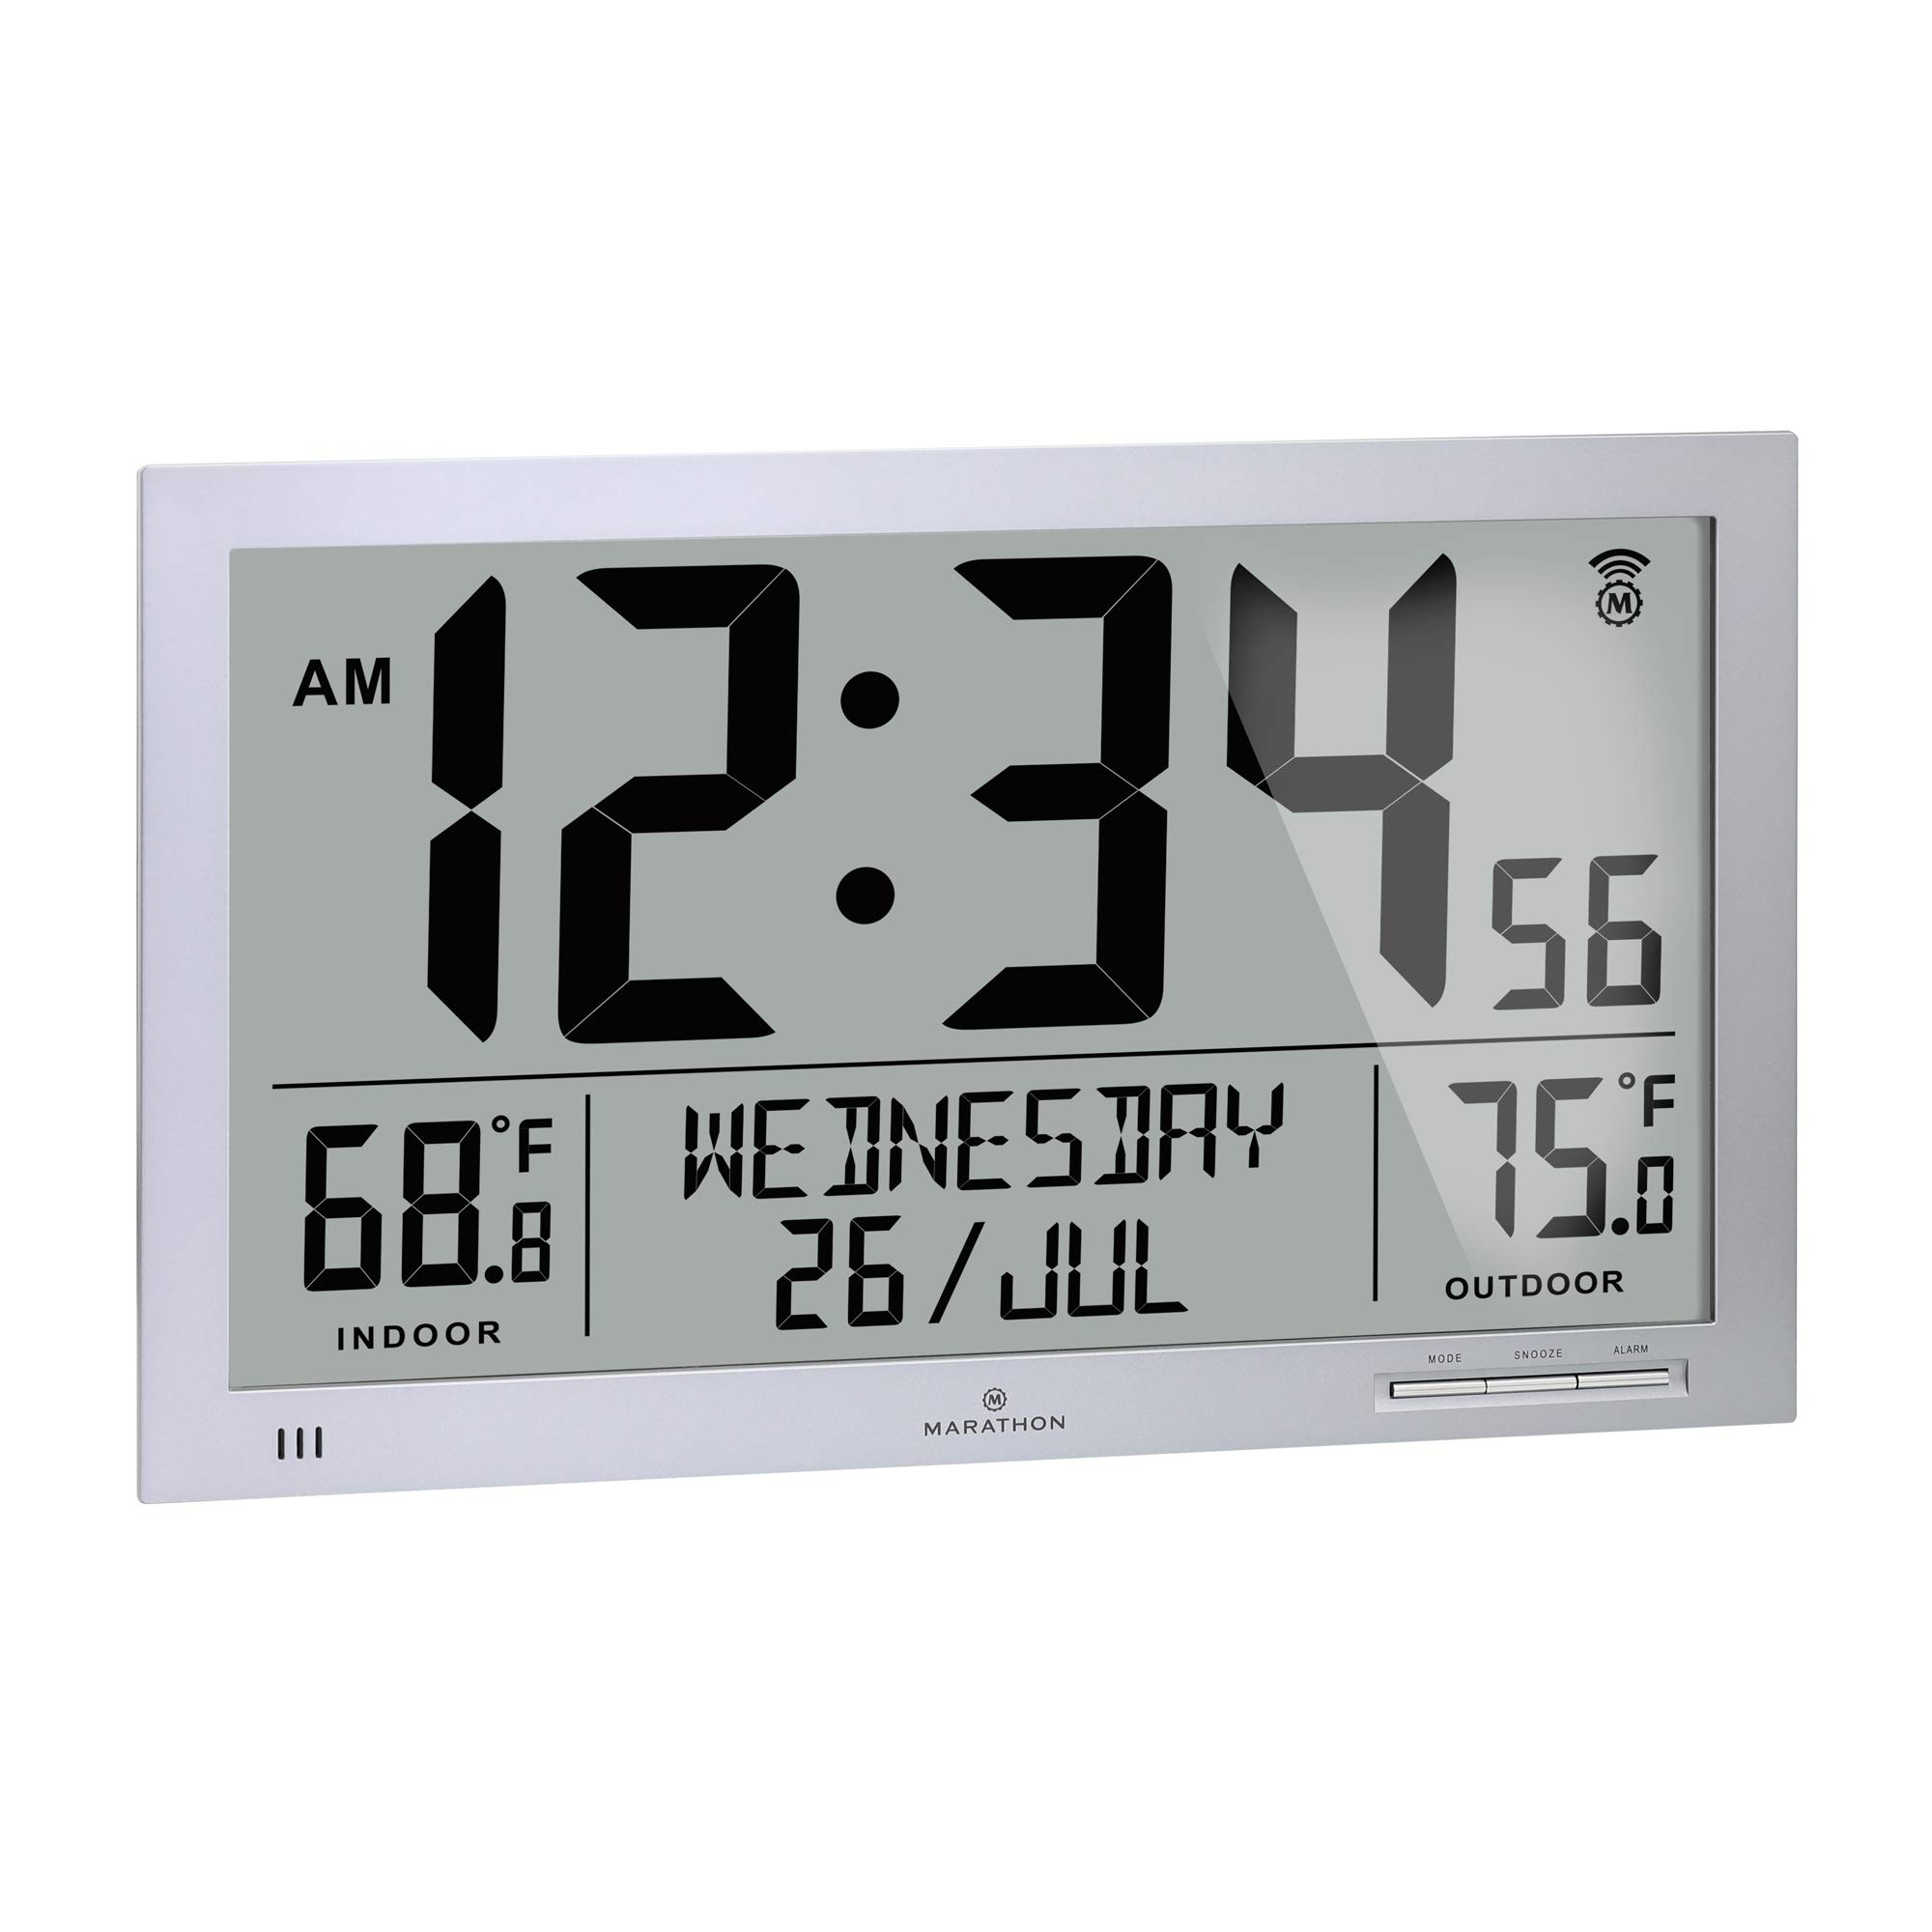 Marathon Slim Atomic Full Calendar Wall Clock with Indoor/Outdoor Temperature. Extra Long 4.5 Inch Digits. Comes with External Probe for Refrigerators - CL030066GG (Graphite Grey)